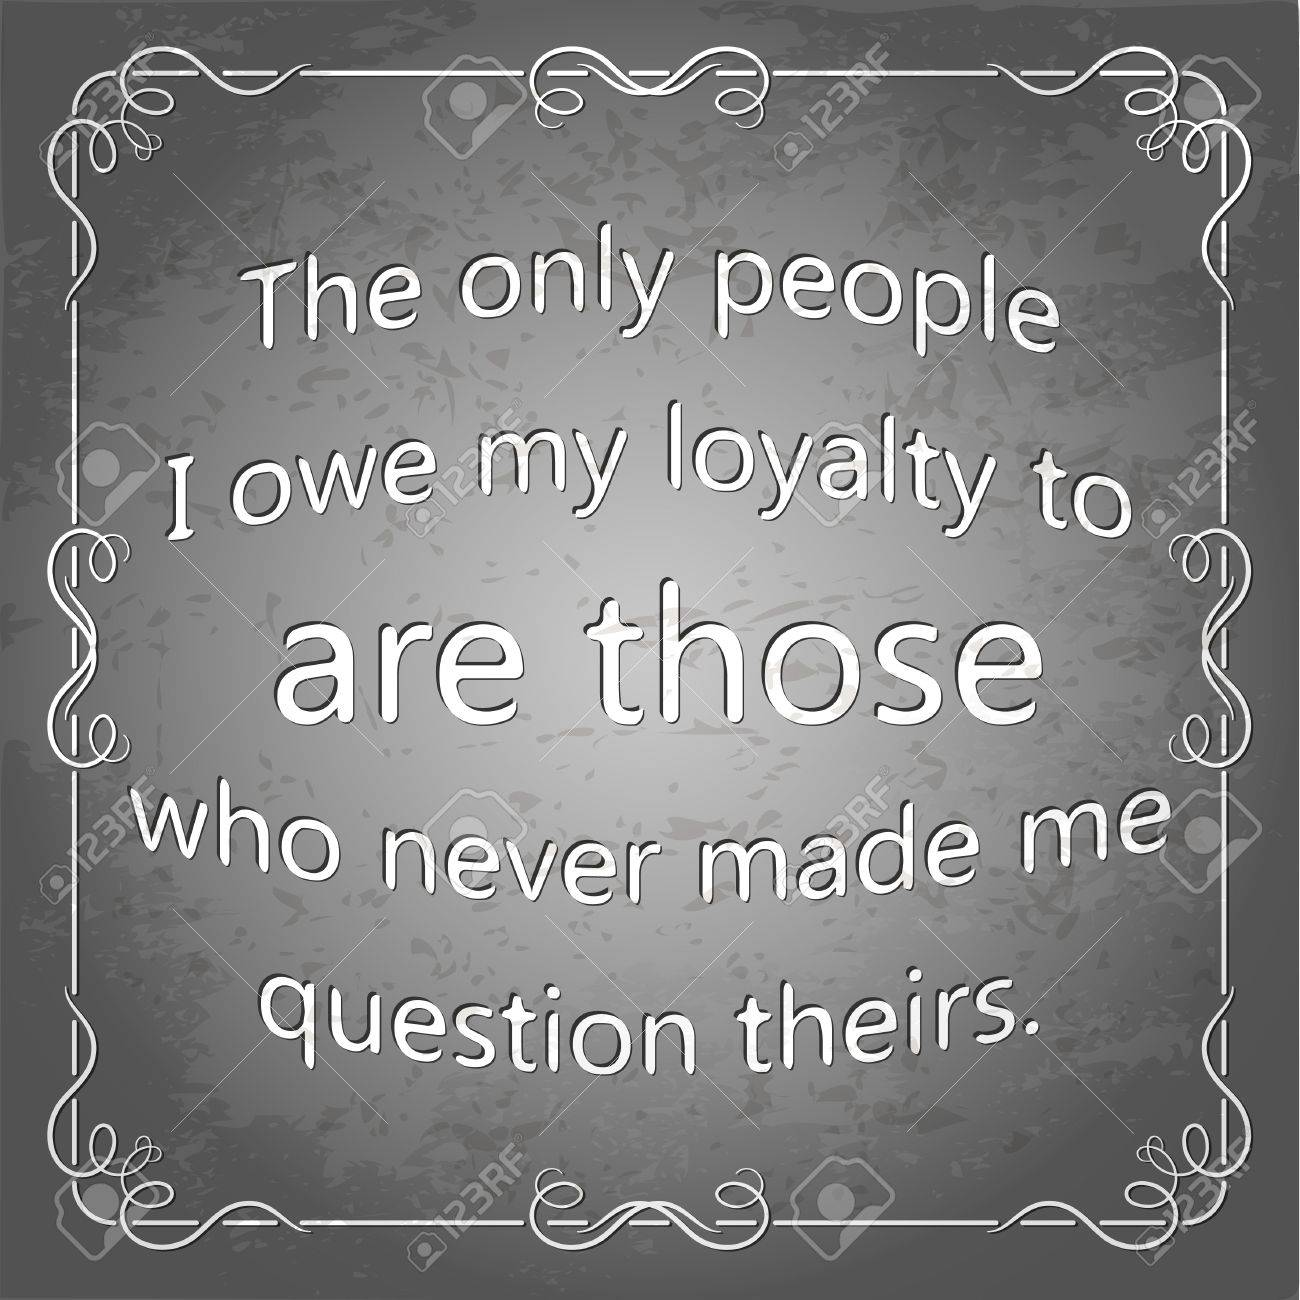 The Only People I Owe My Loyalty To Are Those Who Never Made